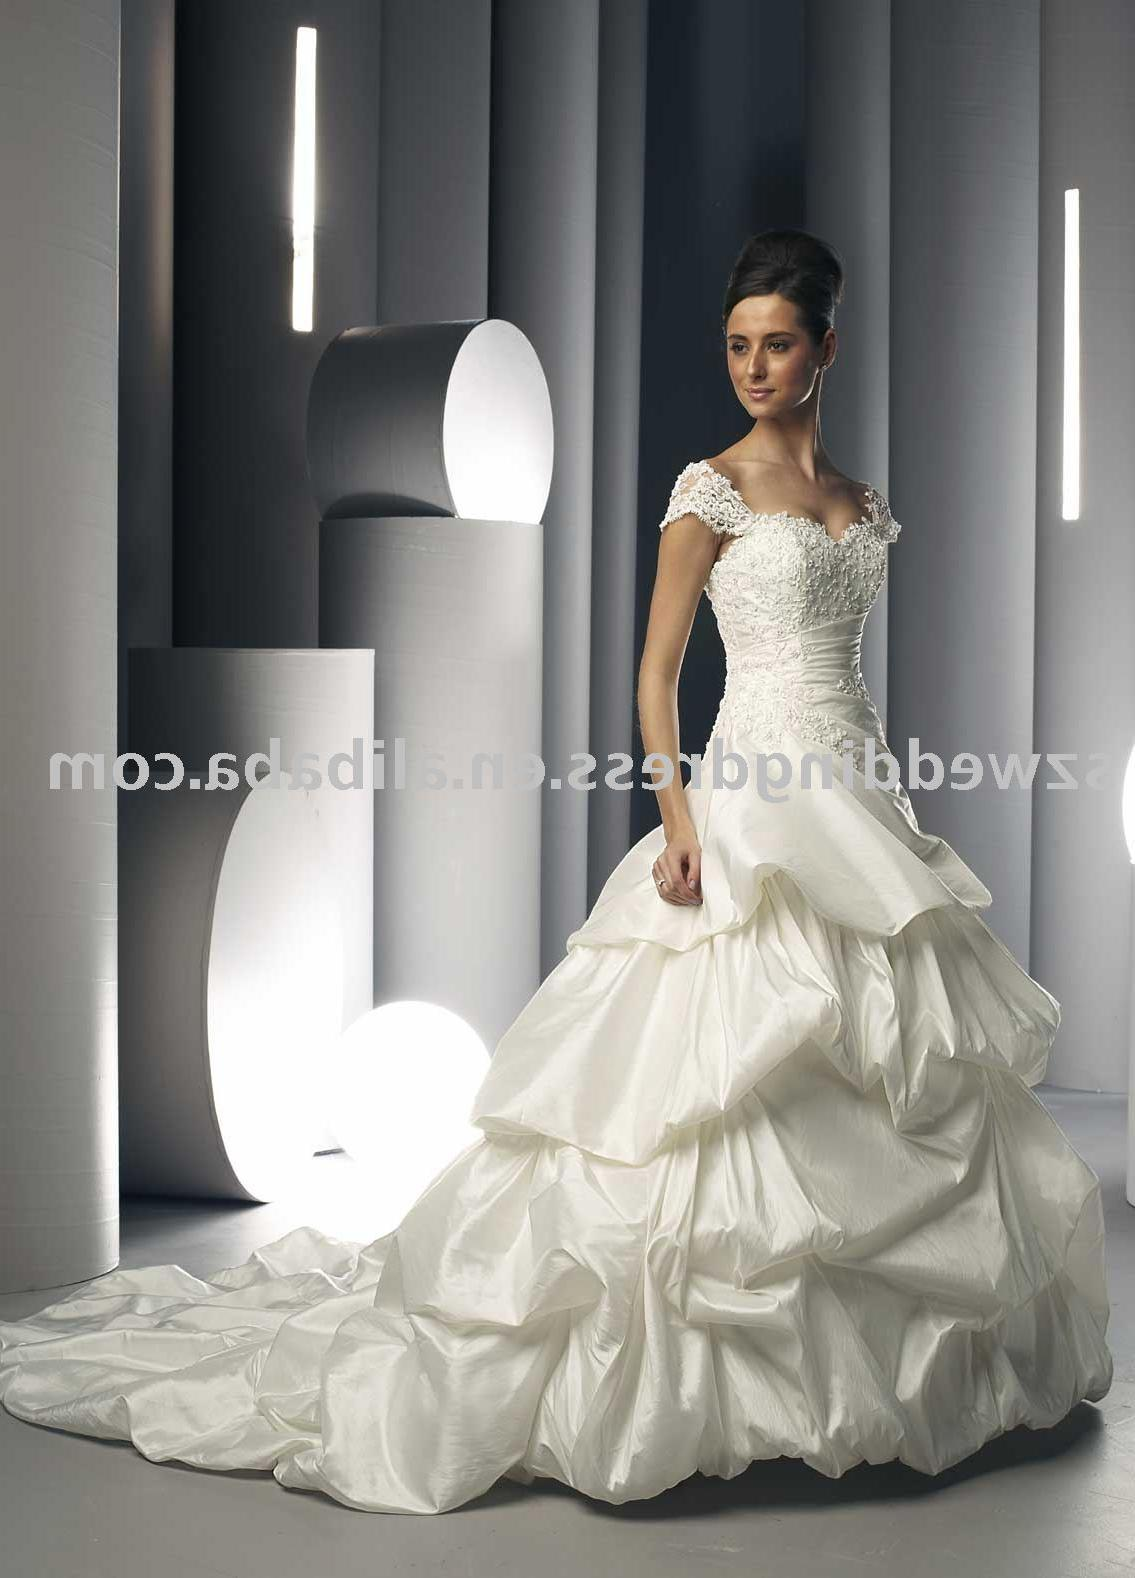 Bridal Dress 23 Pic